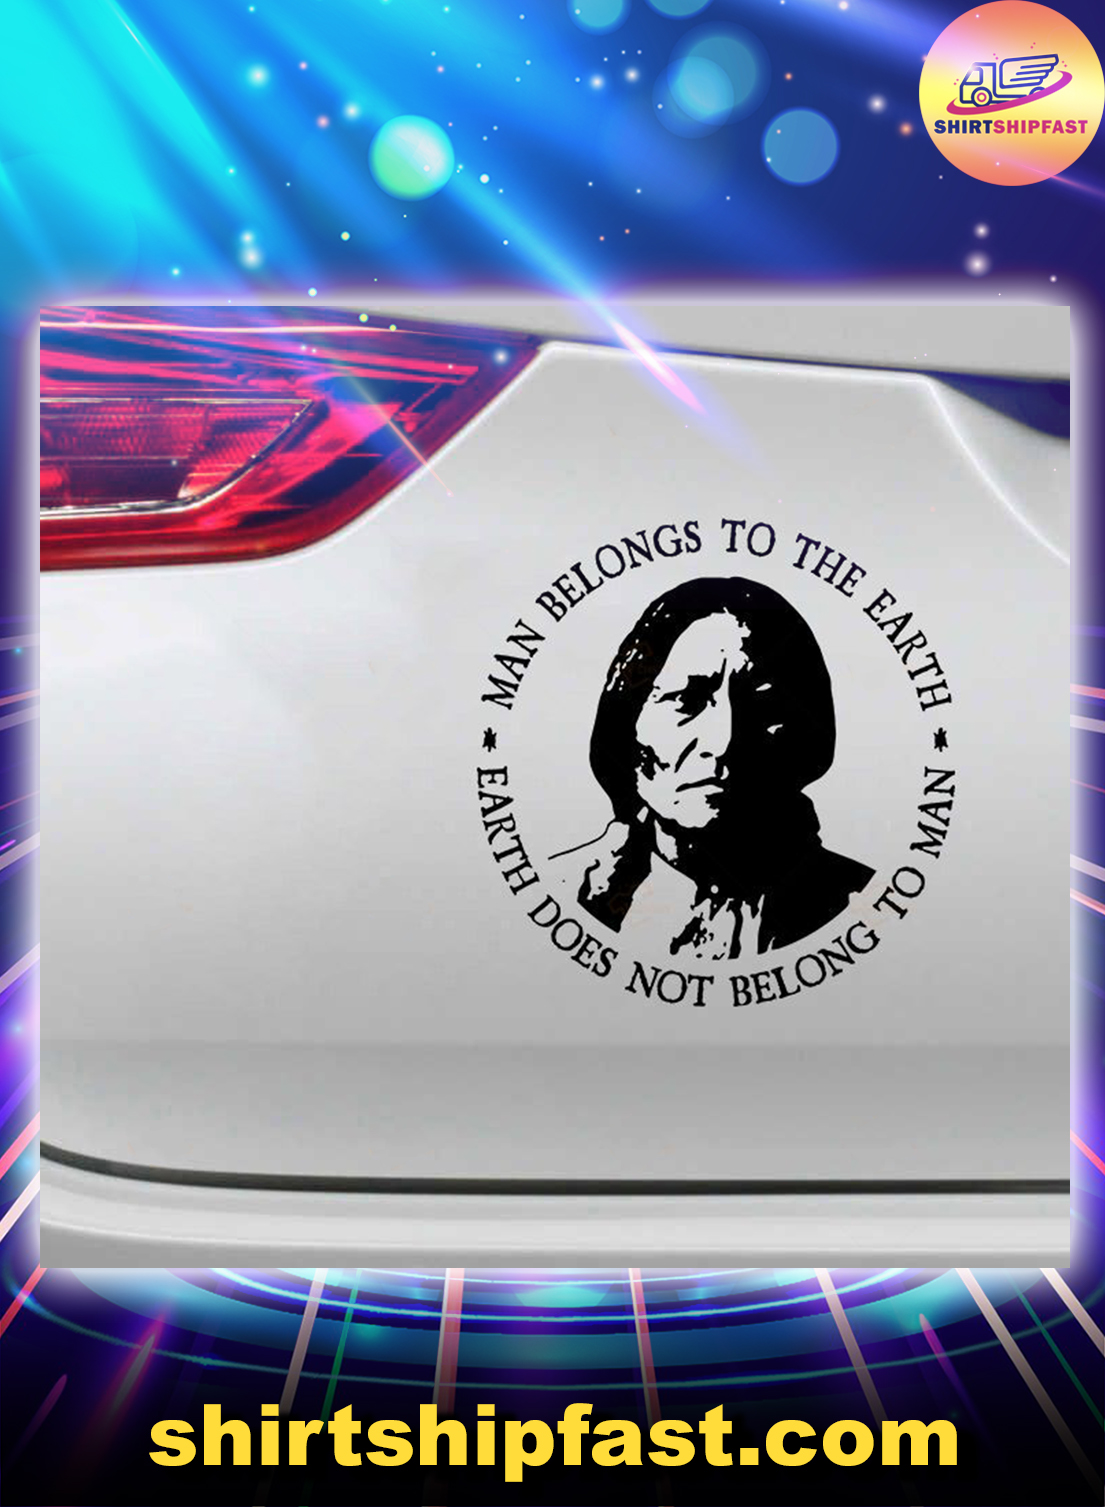 Native American Man belongs to the earth car sticker - Picture 1